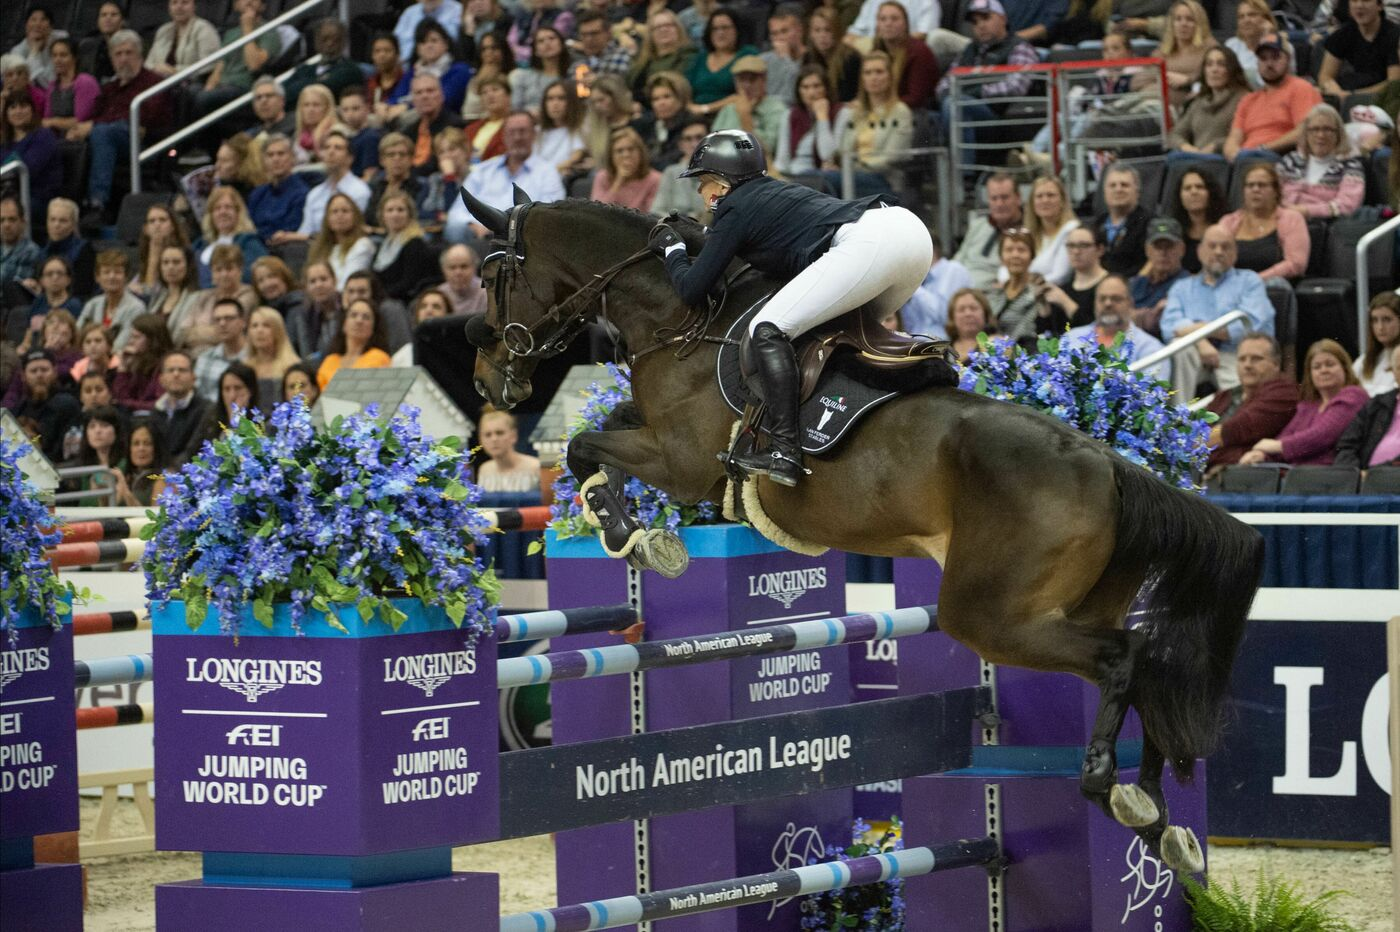 Longines Show Jumping Event: Allocations confirmed for Longines FEI Jumping World Cup North American League 1